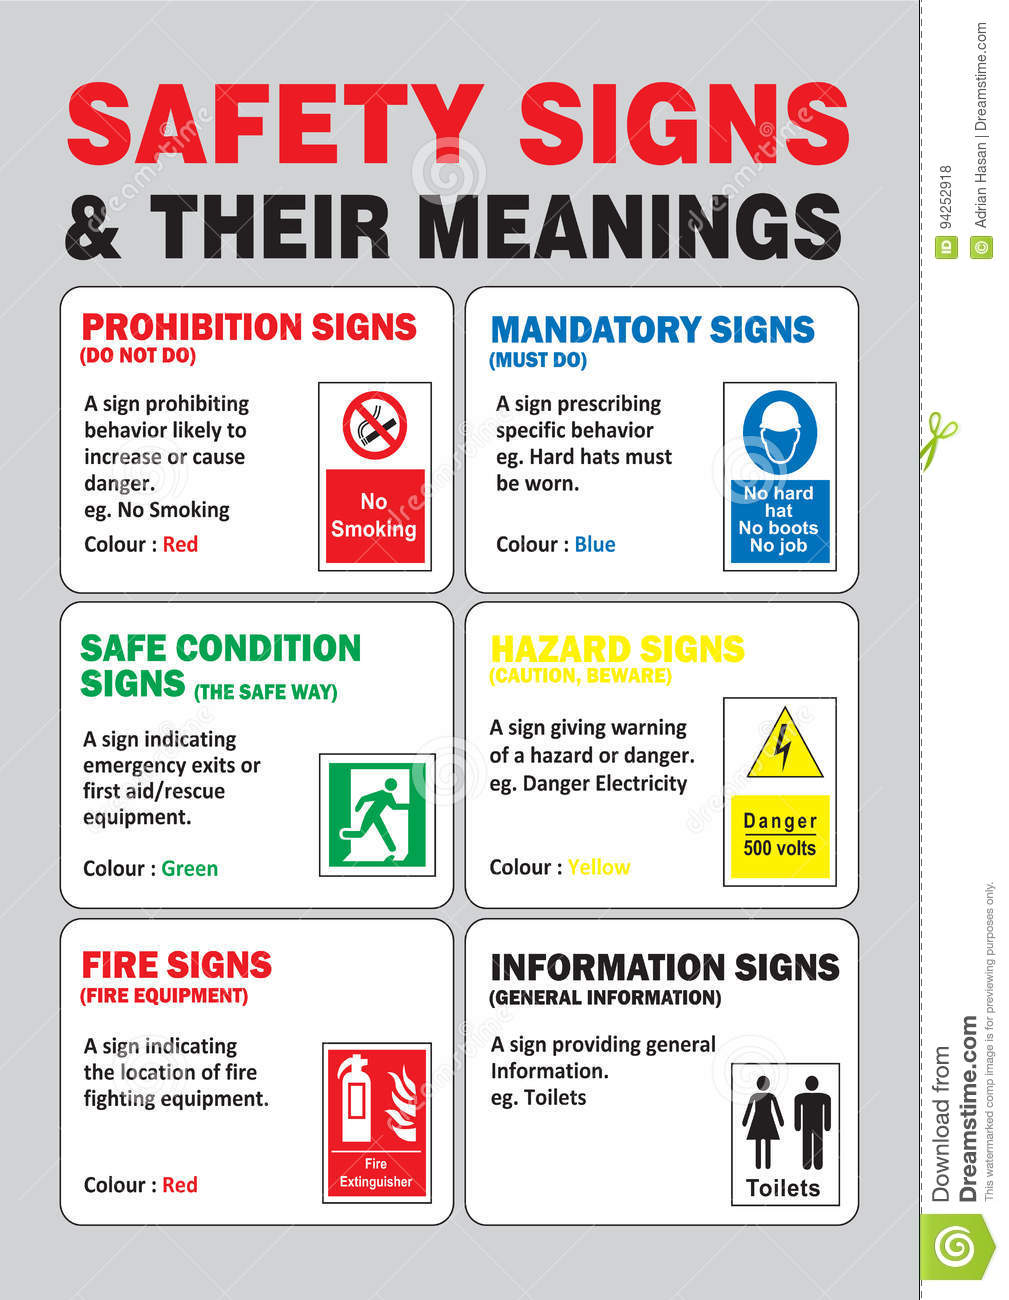 Safety Symbols And Meanings Safty Symbols Mtm